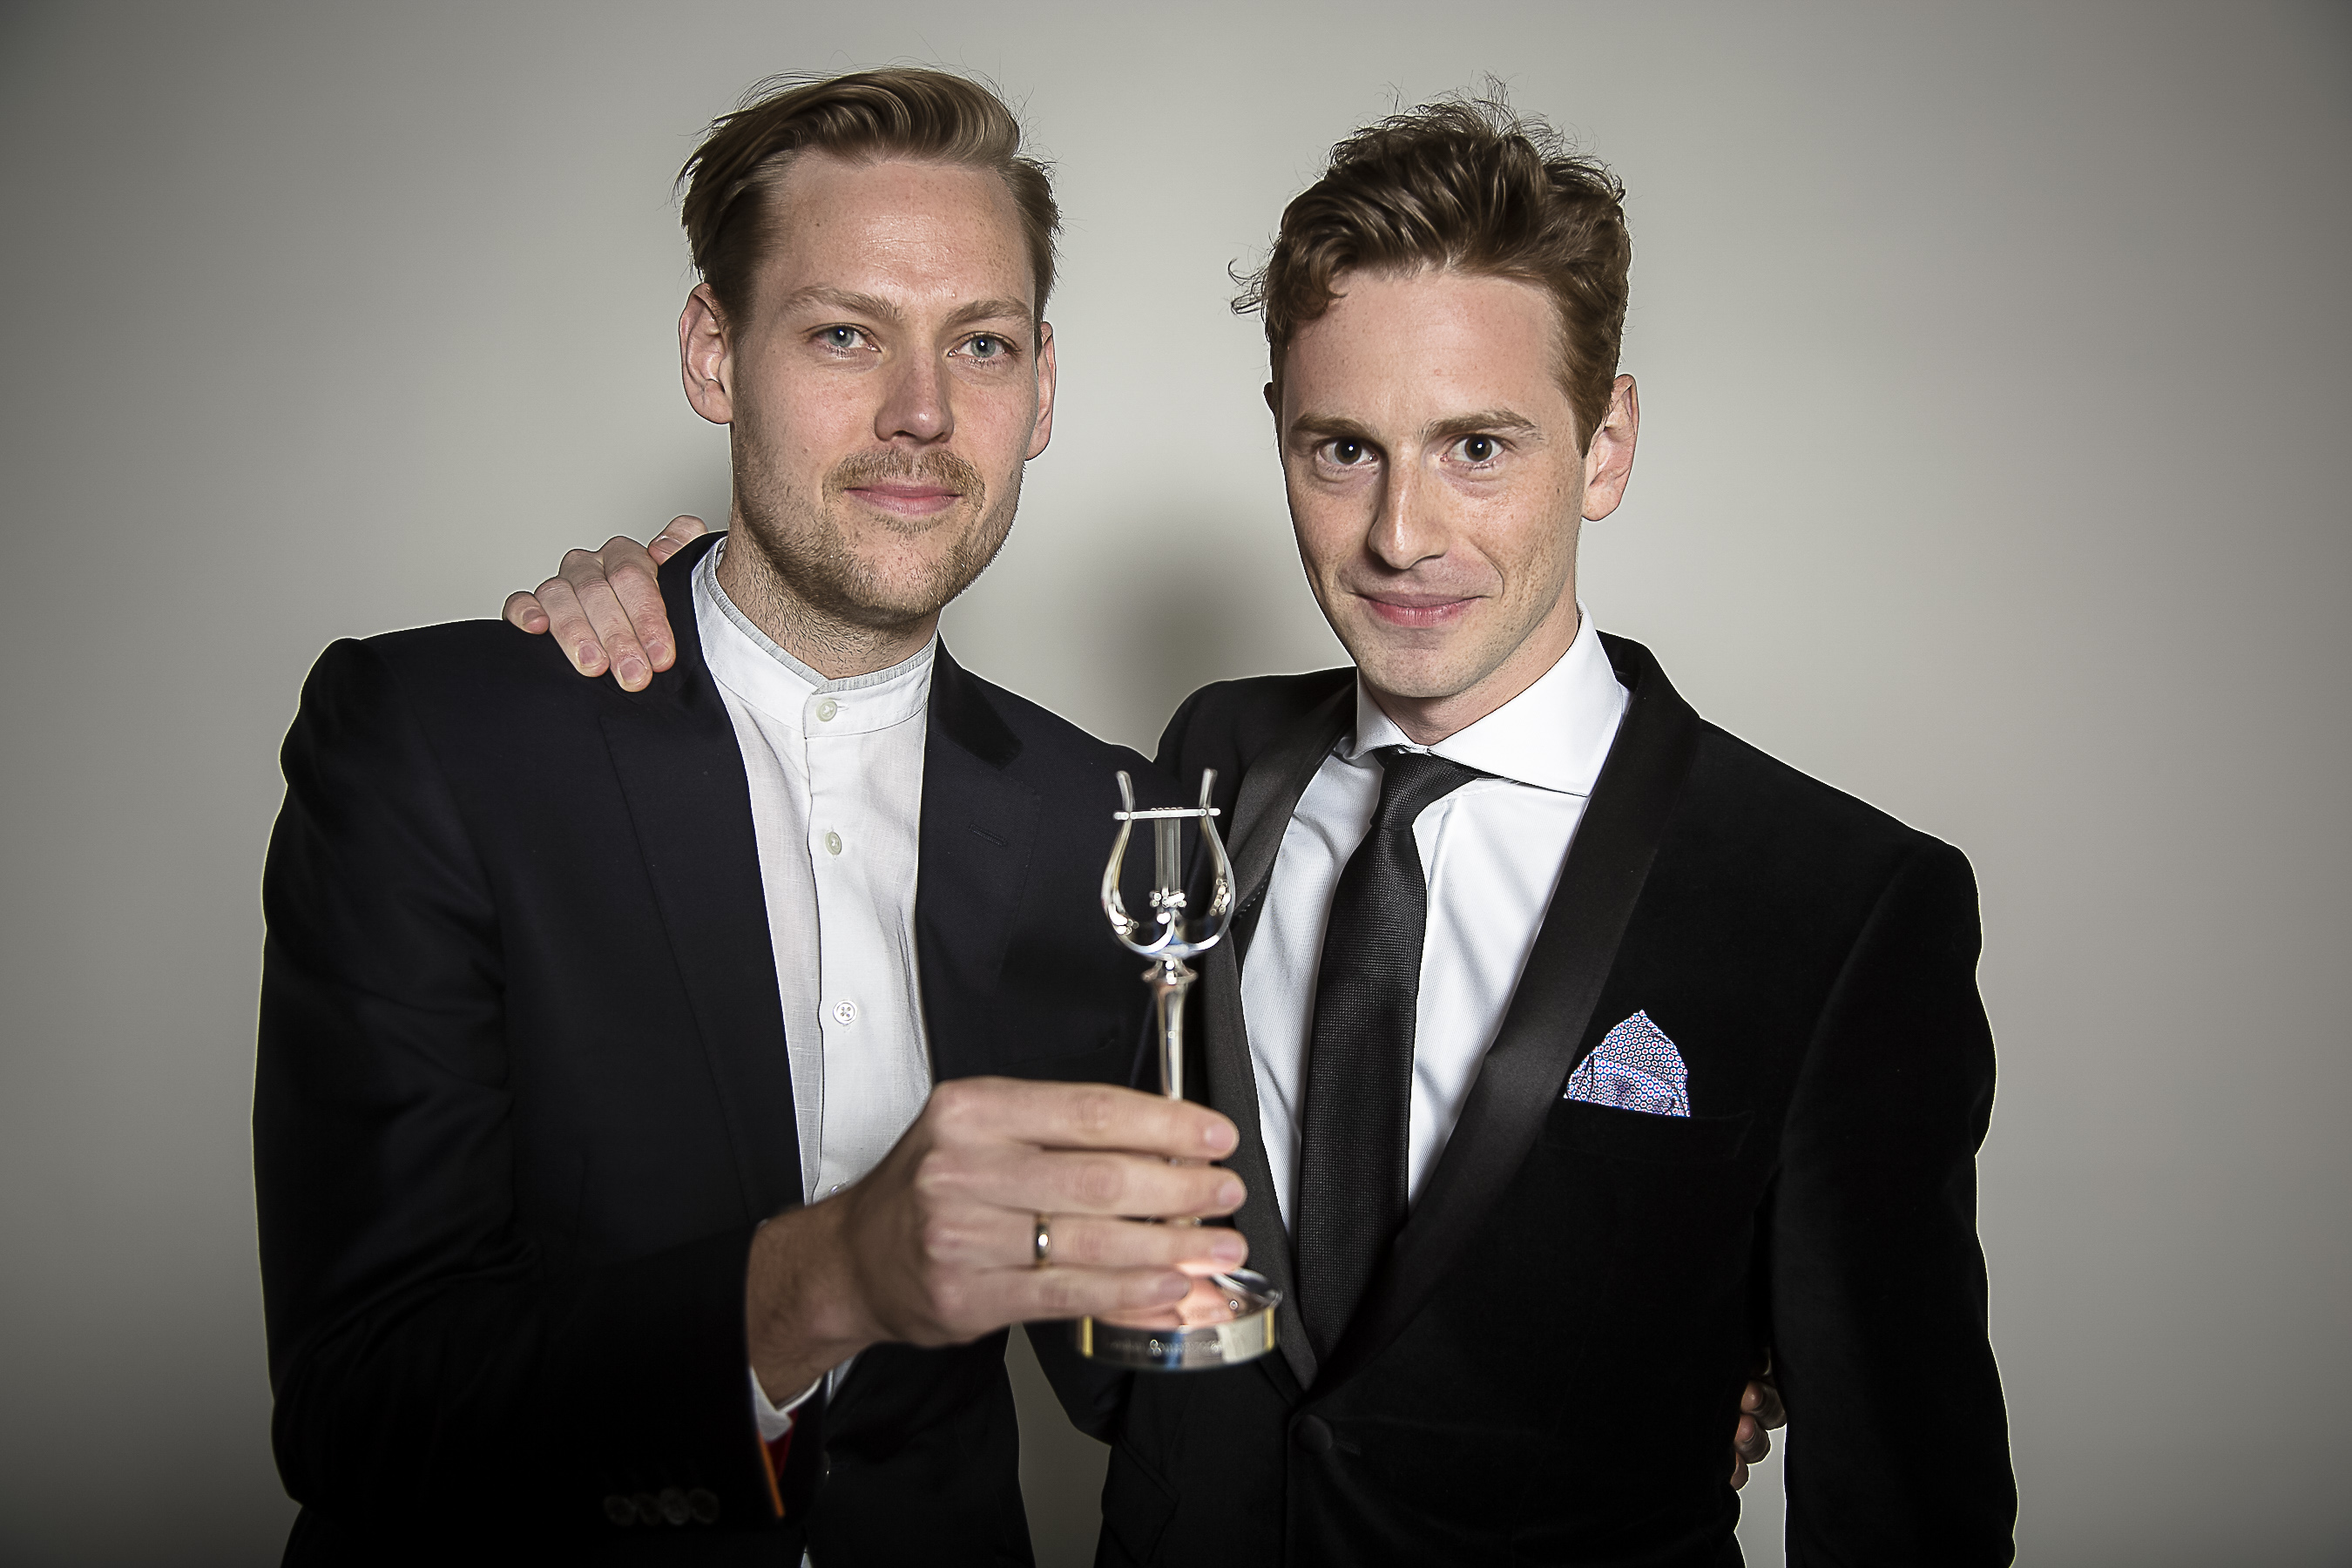 Conductor Hugh Brunt and Robert Ames Artistic Directors of London Contemporary Orchestra Winner of the RPS Music Award for Ensemble. Photographed at the RPS Music Awards, London, Tuesday 5 May Photo credit required: Simon Jay Price www.rpsmusicawards.com